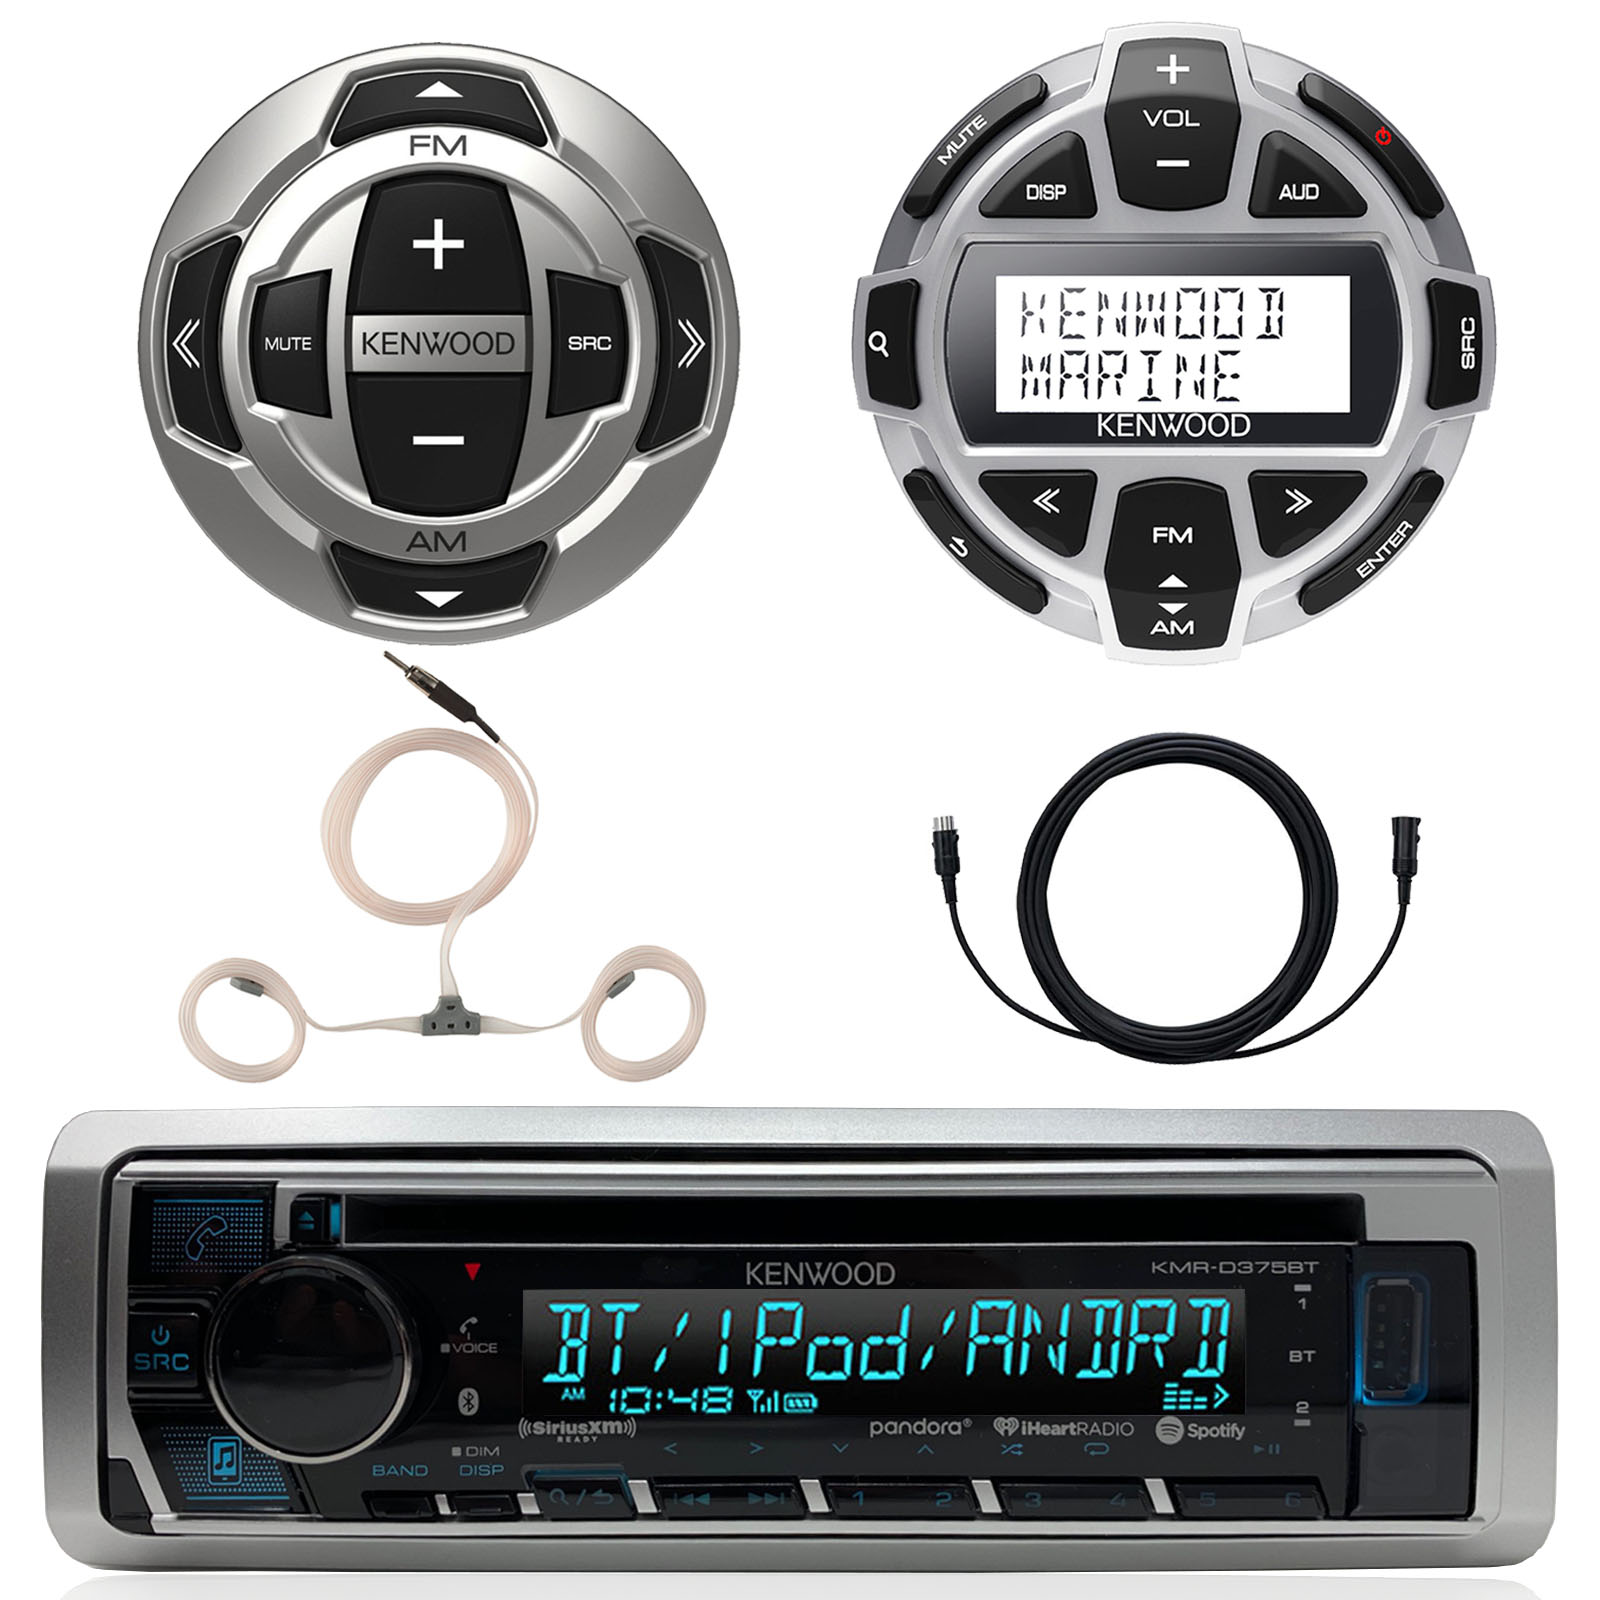 """Kenwood Marine Motorsports Boat Yacht In-Dash Single DIN CD Bluetooth UBS AUX Receiver, Kenwood Digital LCD Display Wired Remote, Kenwood Wired Remote, 22"""" AM/FM Antenna, 7 Meter 22 Ft Extension"""